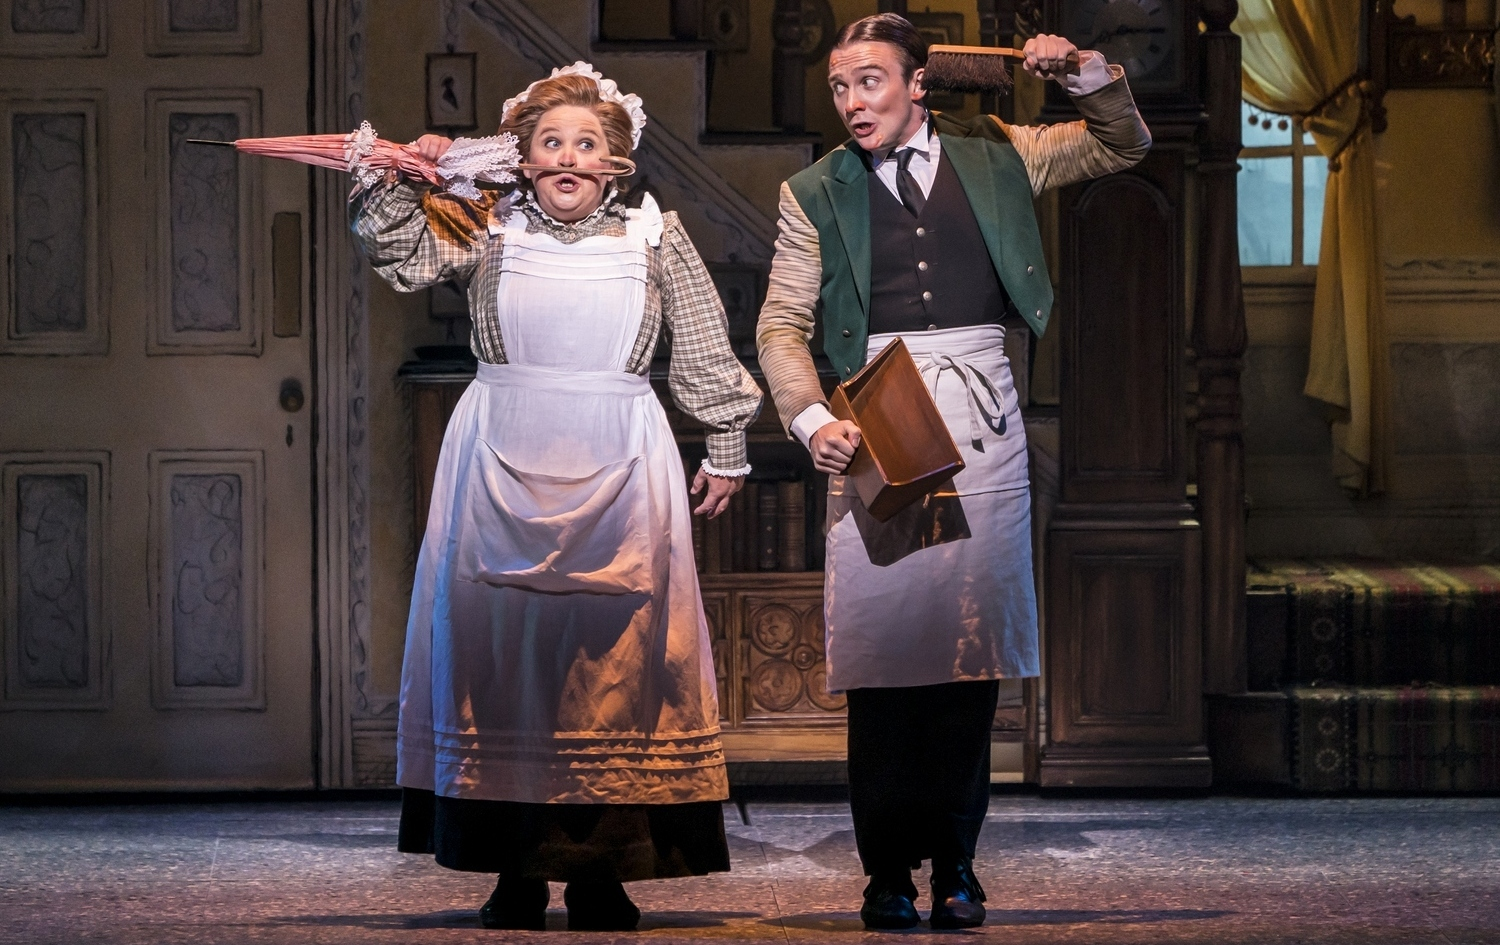 Claire Machin as Mrs Brill and Jack North as Robertson Ay in Mary Poppins - Photograph Johan Persson